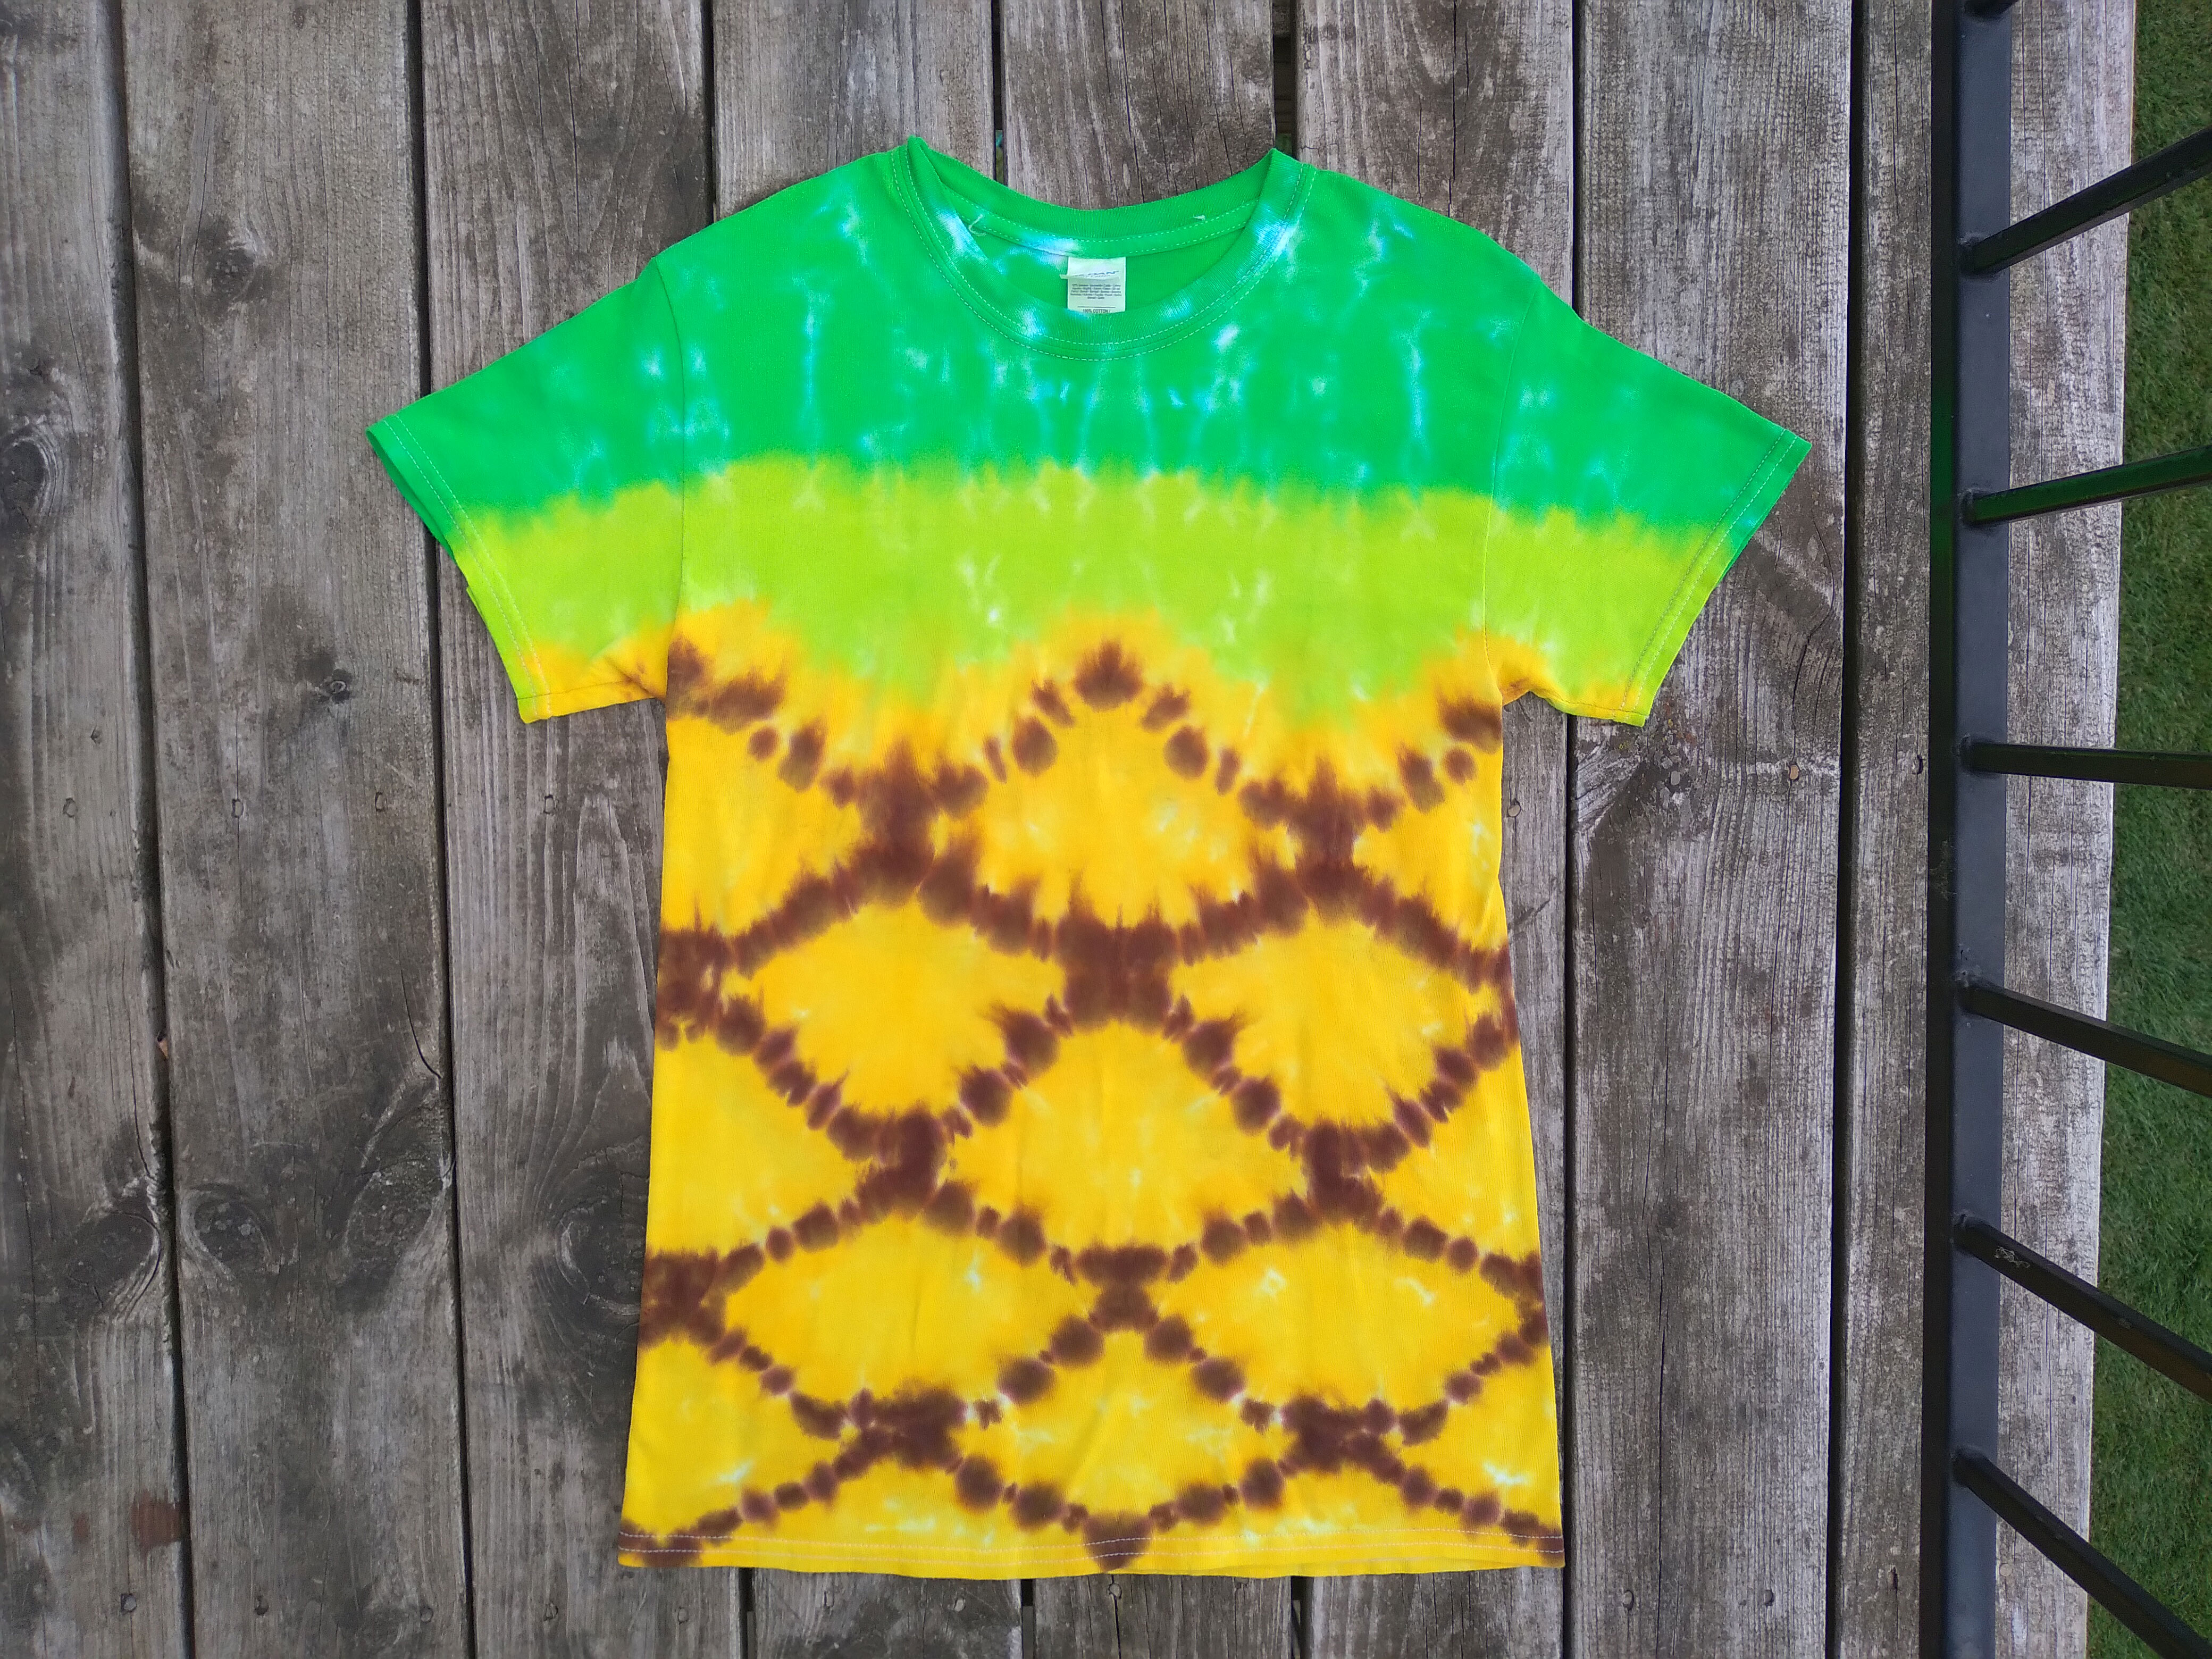 Pineapple tie dyed t-shirt